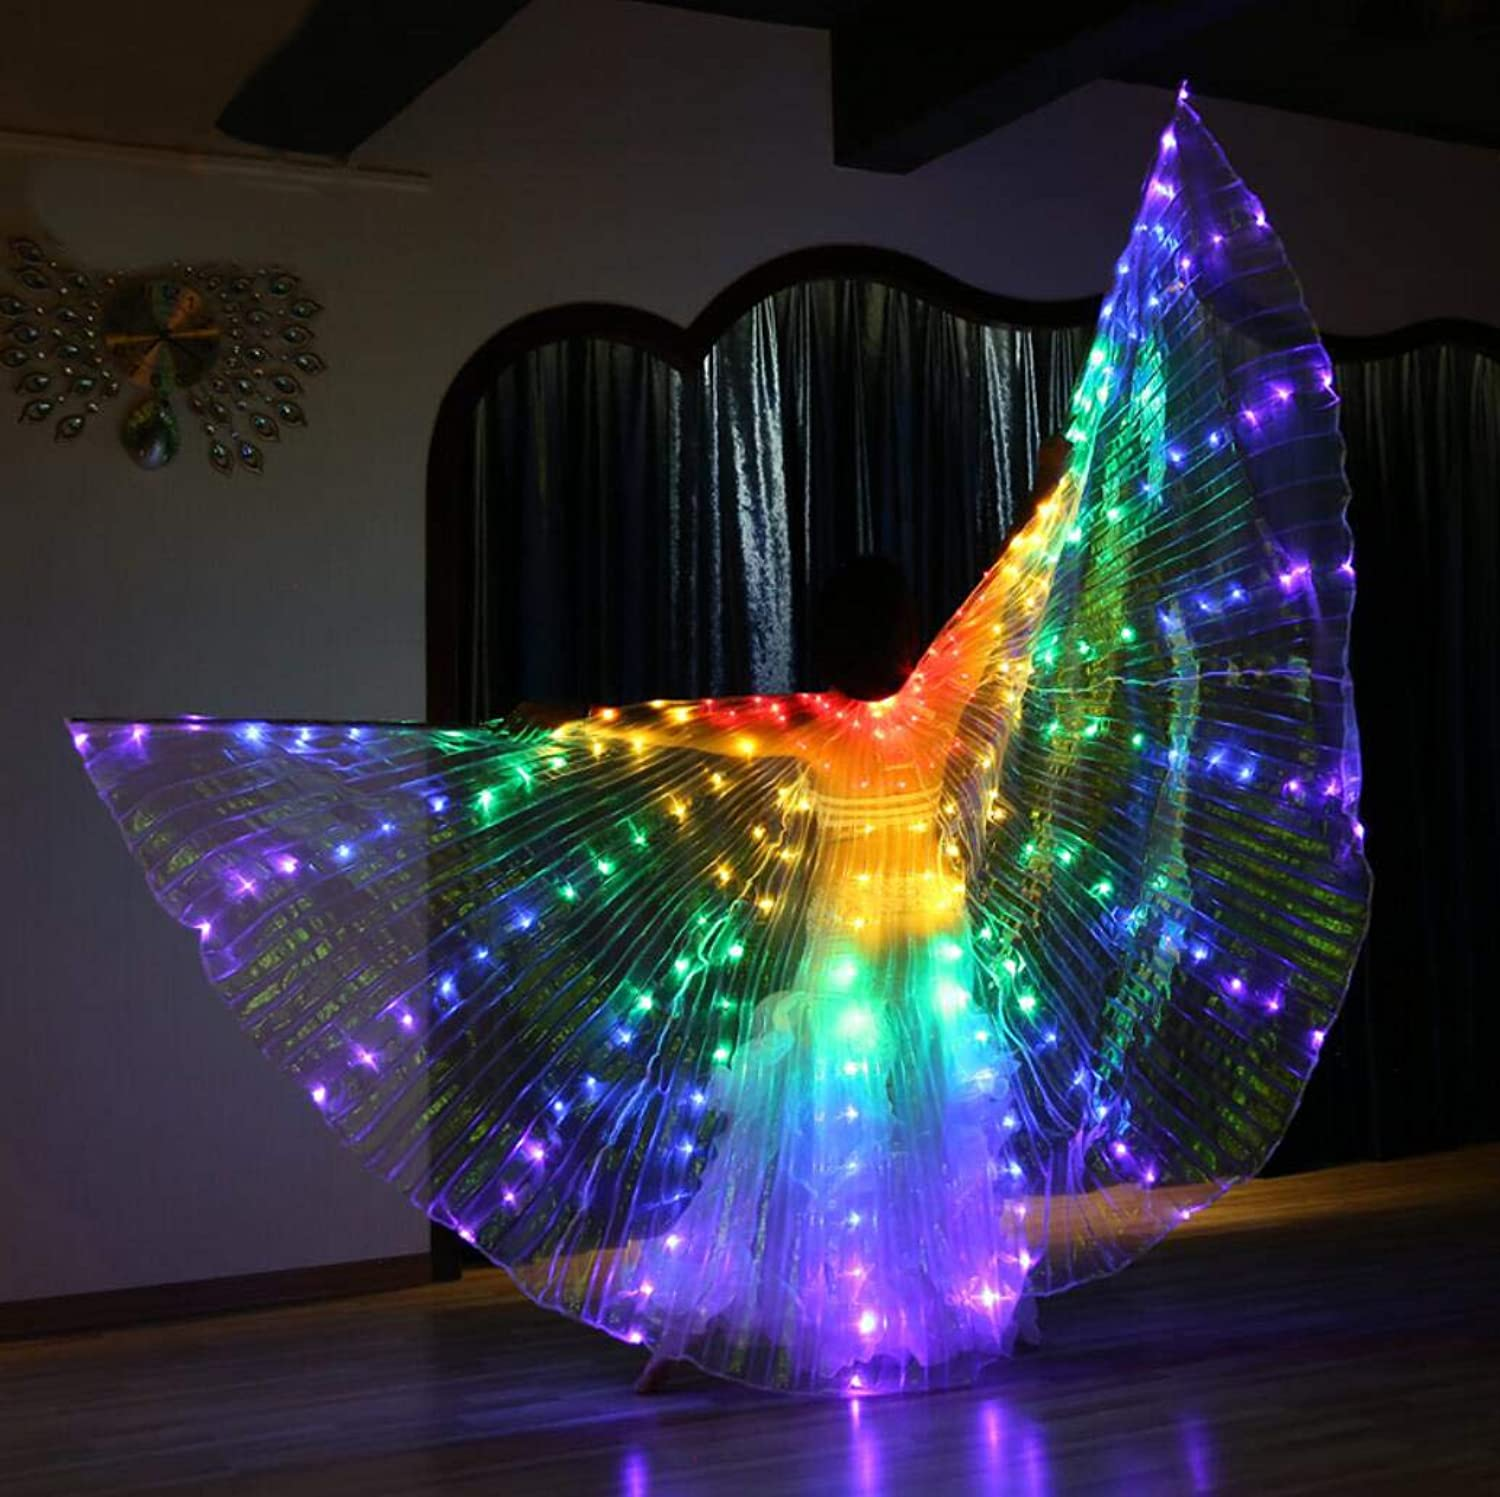 Dance Fairy Opening Belly Dance LED Isis Wings with Sticks RodsWings 216 LED Luminous Light Up Stage Performance Props Passed CE, FCC Certification